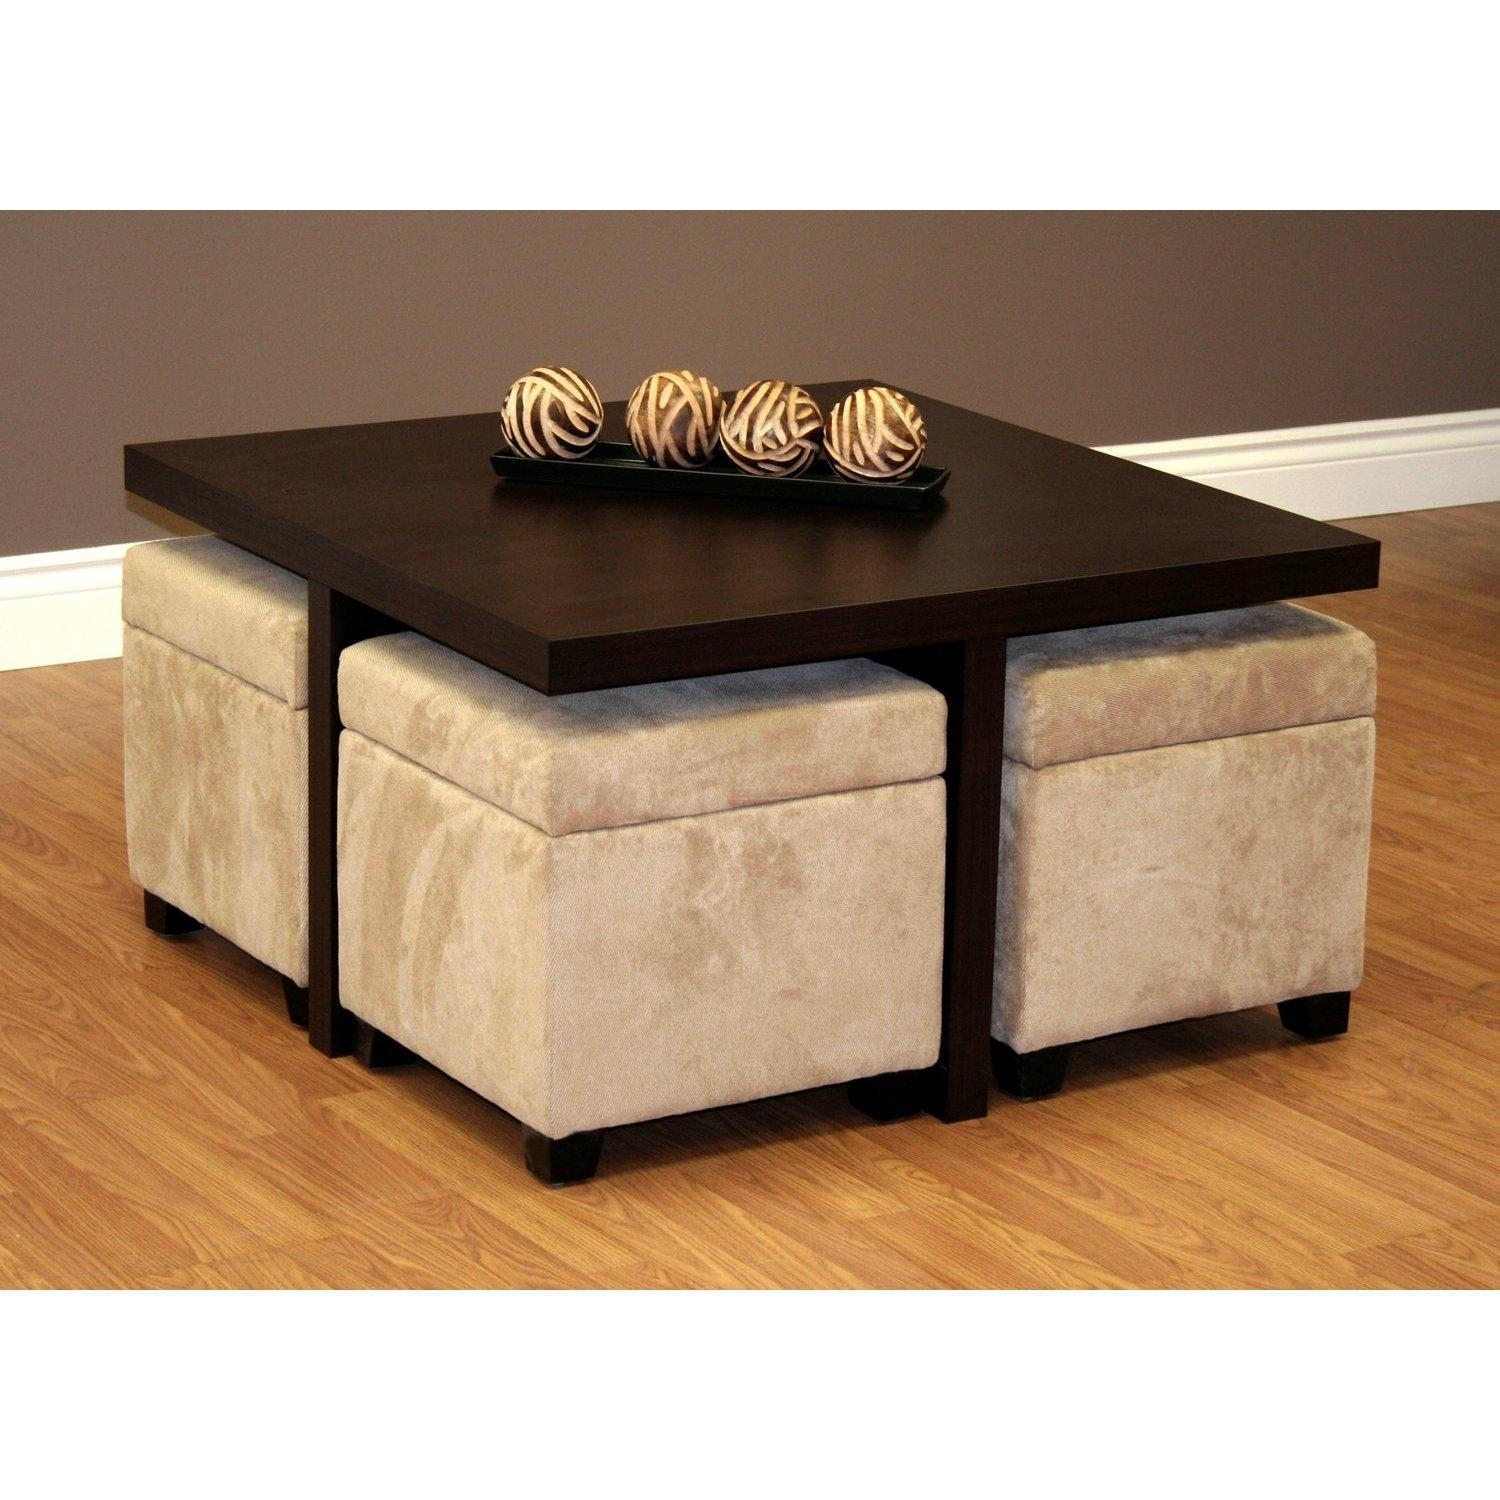 Coffee Table : Awesome 2 Piece Nesting Tables Round Nesting Side In Sofa Side Tables With Storages (Image 4 of 25)